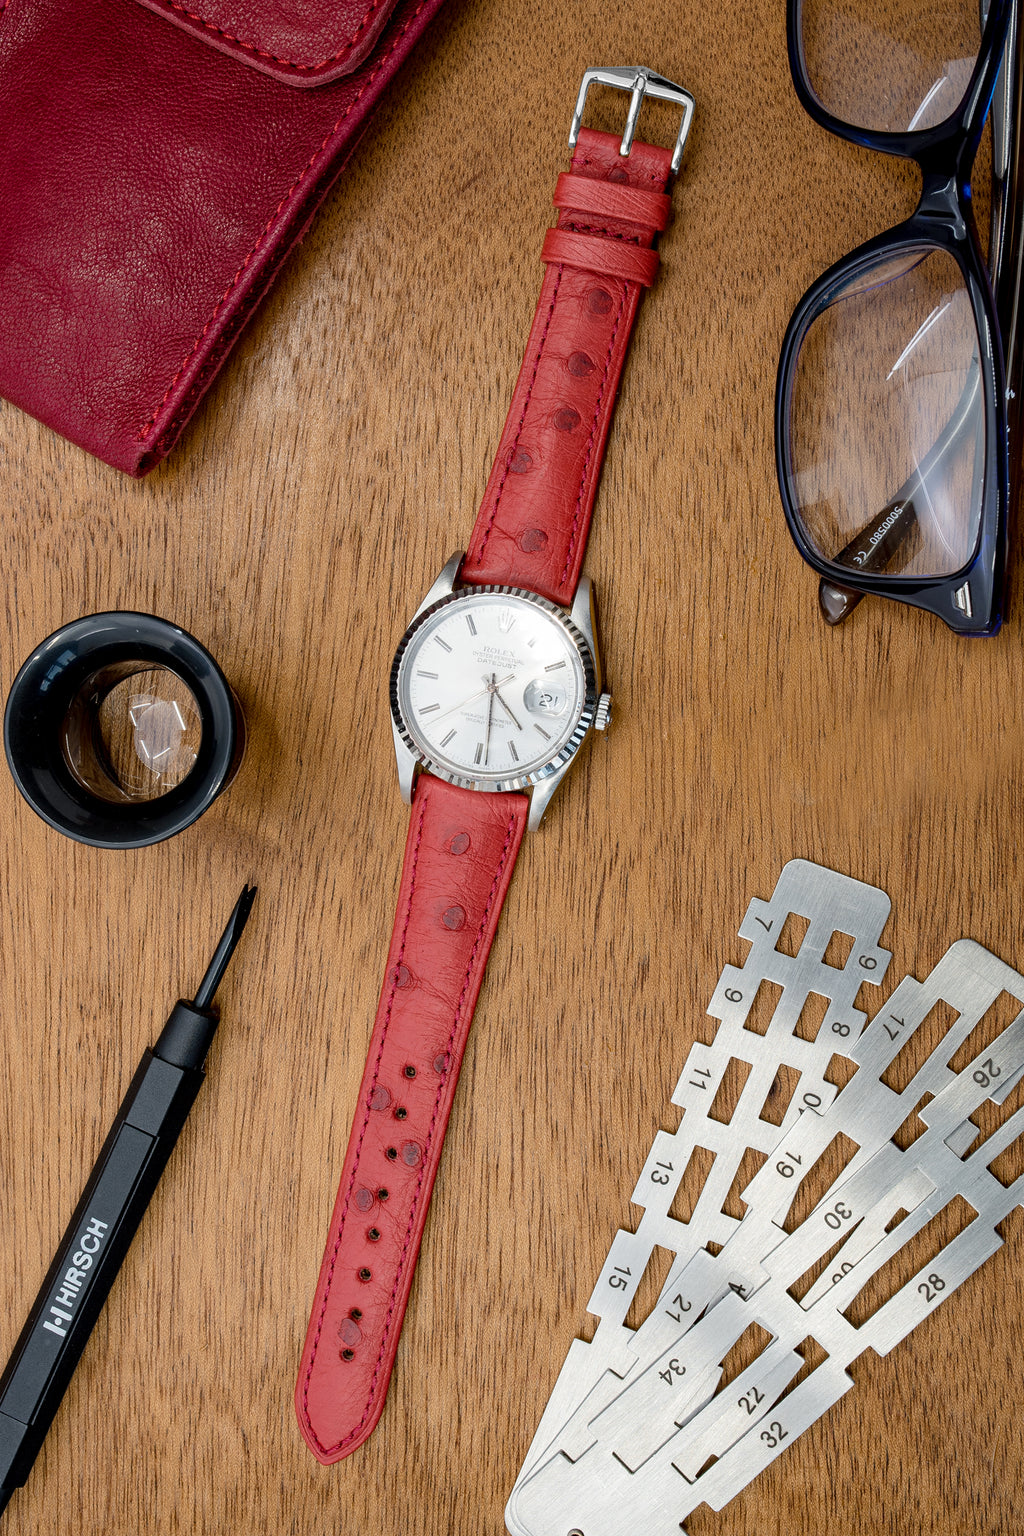 Hirsch MASSAI OSTRICH Leather Watch Strap in RED